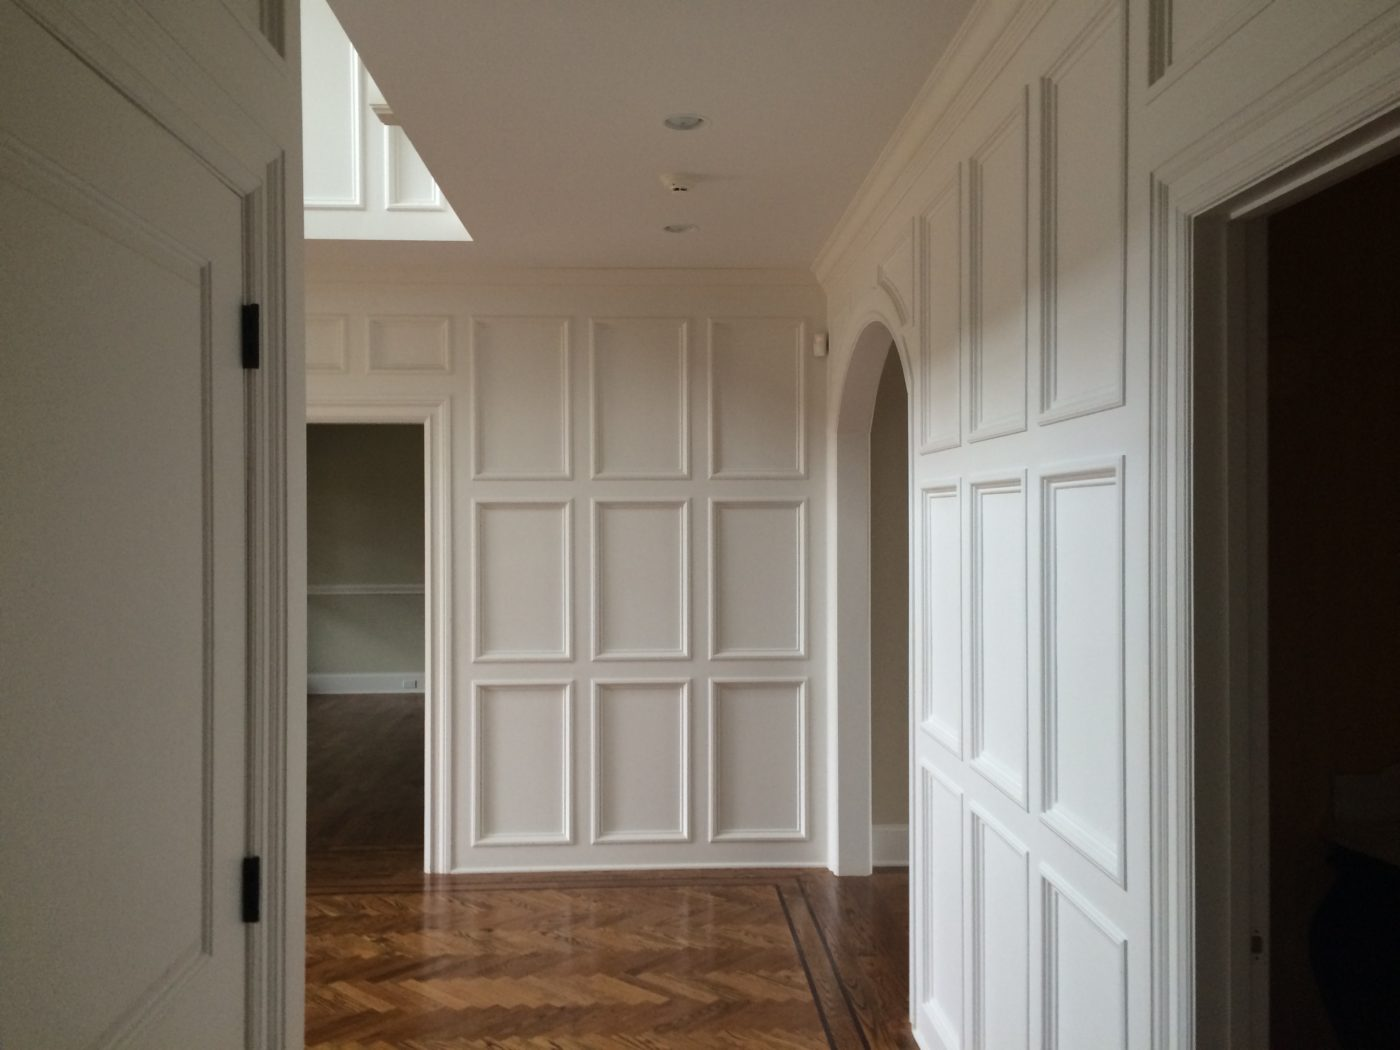 The benefits of wainscoting palette pro beadboard this type of wainscoting uses panels with symmetrical vertical grooves giving a warm look to your room beadboard is the easiest form of jeuxipadfo Images